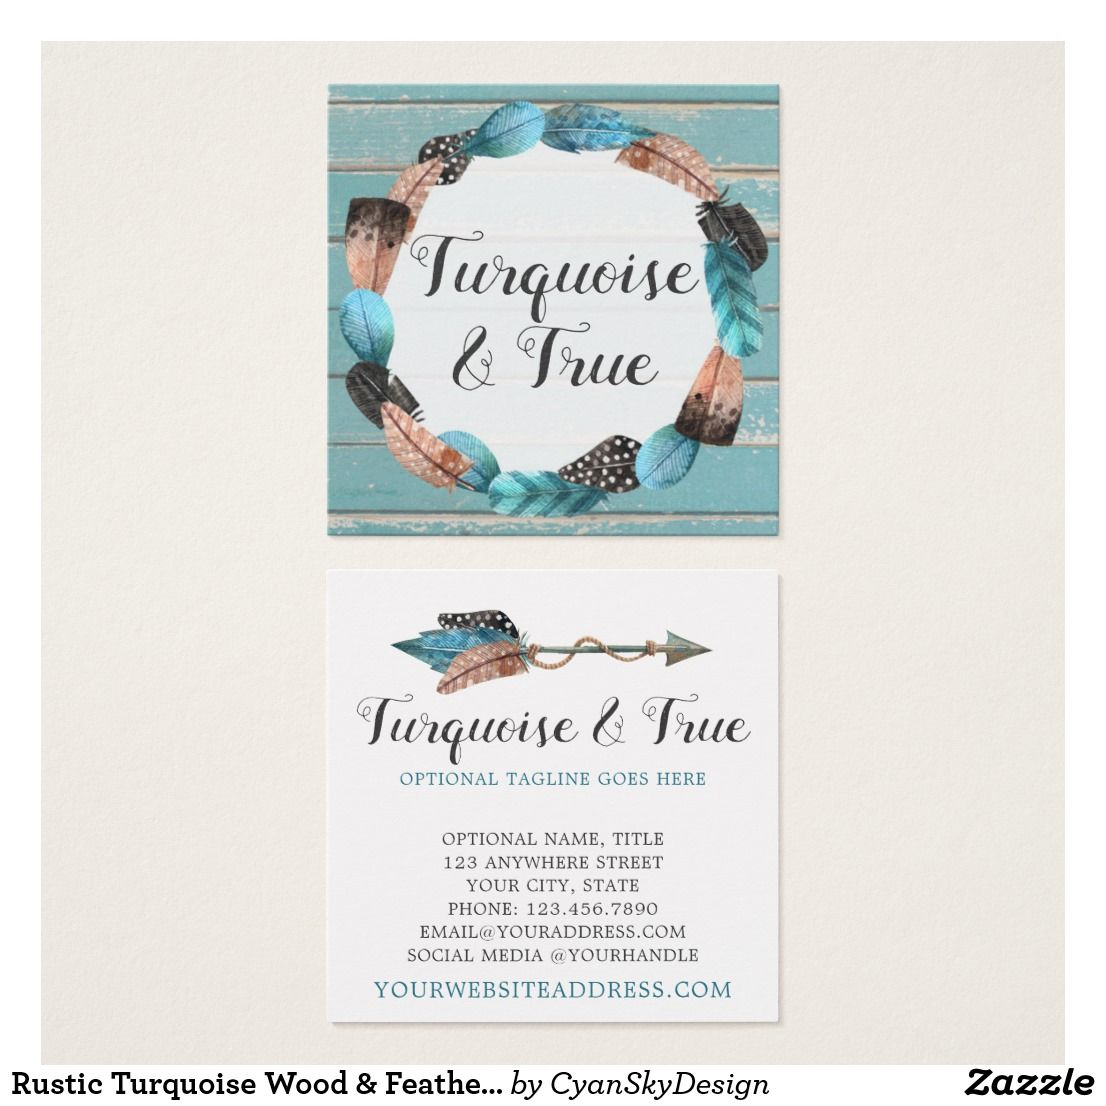 Rustic turquoise wood feather arrow boho chic square business card rustic turquoise wood feather arrow boho chic square business card by cyanskydesign on zazzle reheart Image collections